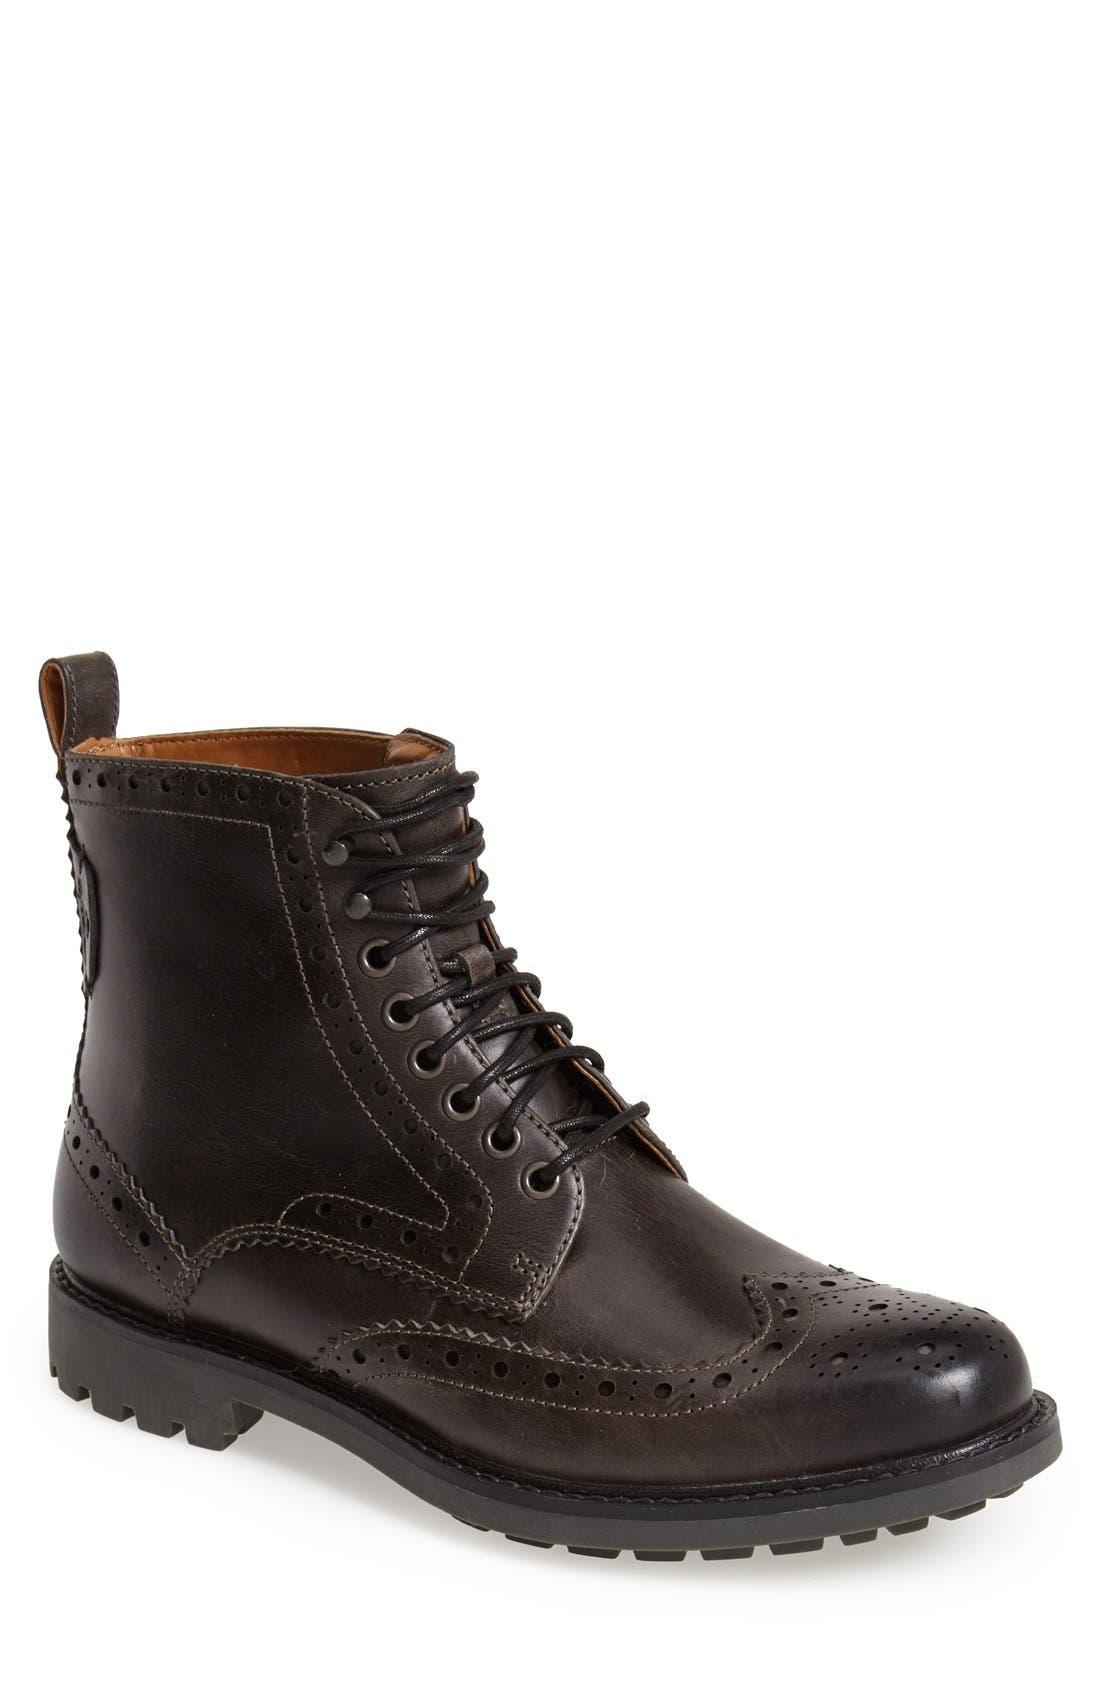 'Montacute Lord' Wingtip Boot,                         Main,                         color, 020